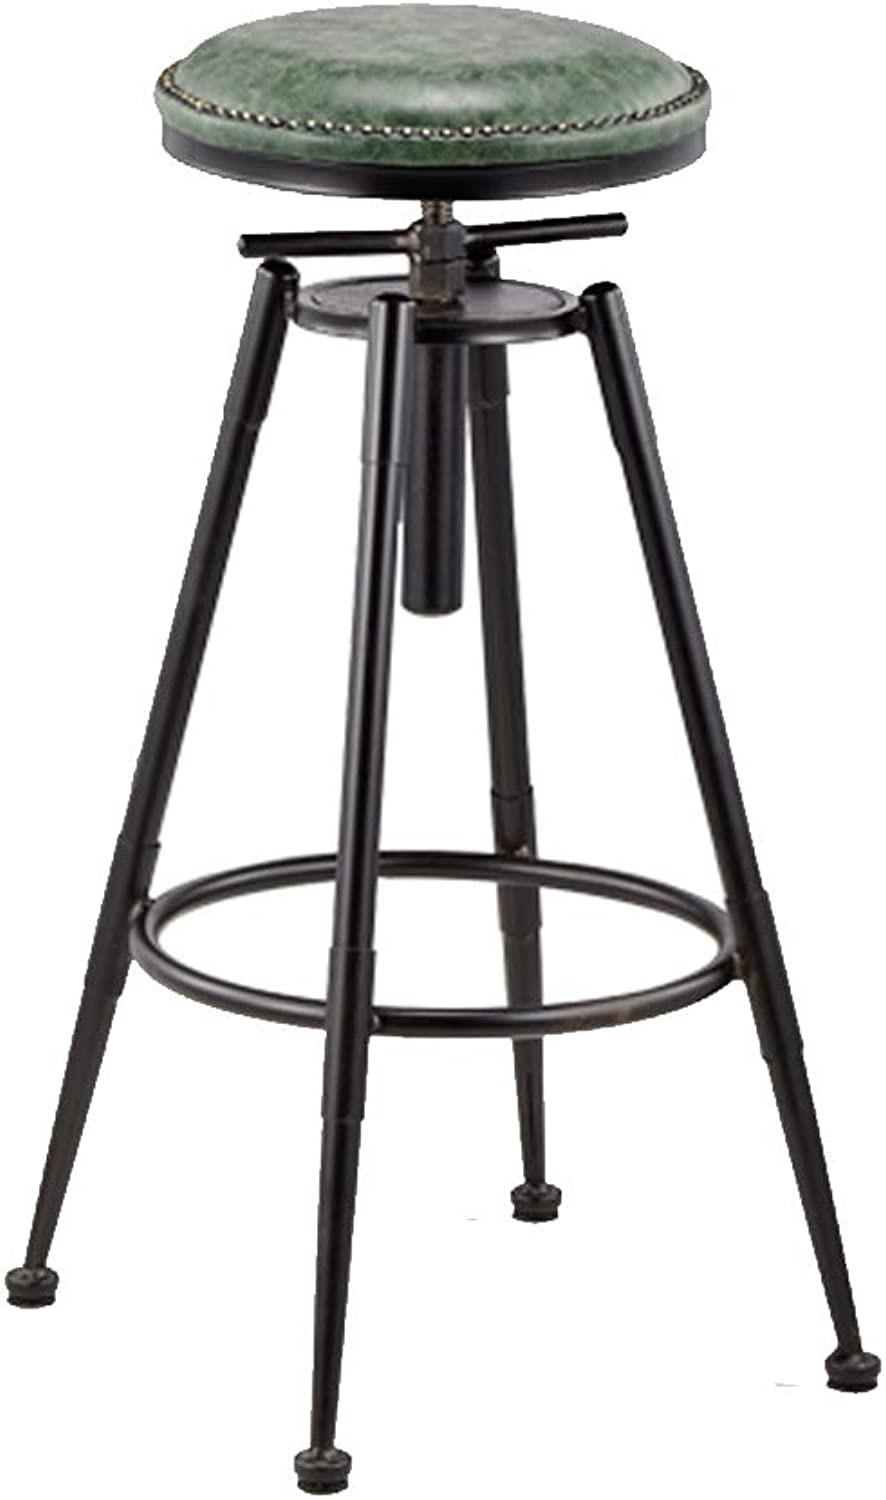 Vintage Swivel Bar Stools Faux Leather Breakfast Kitchen Pub Barstools   Counter Height Metal Stool for Bars, Bistro Patio & Cafe   Best Home Garden Chairs   Indoor & Outdoor Use